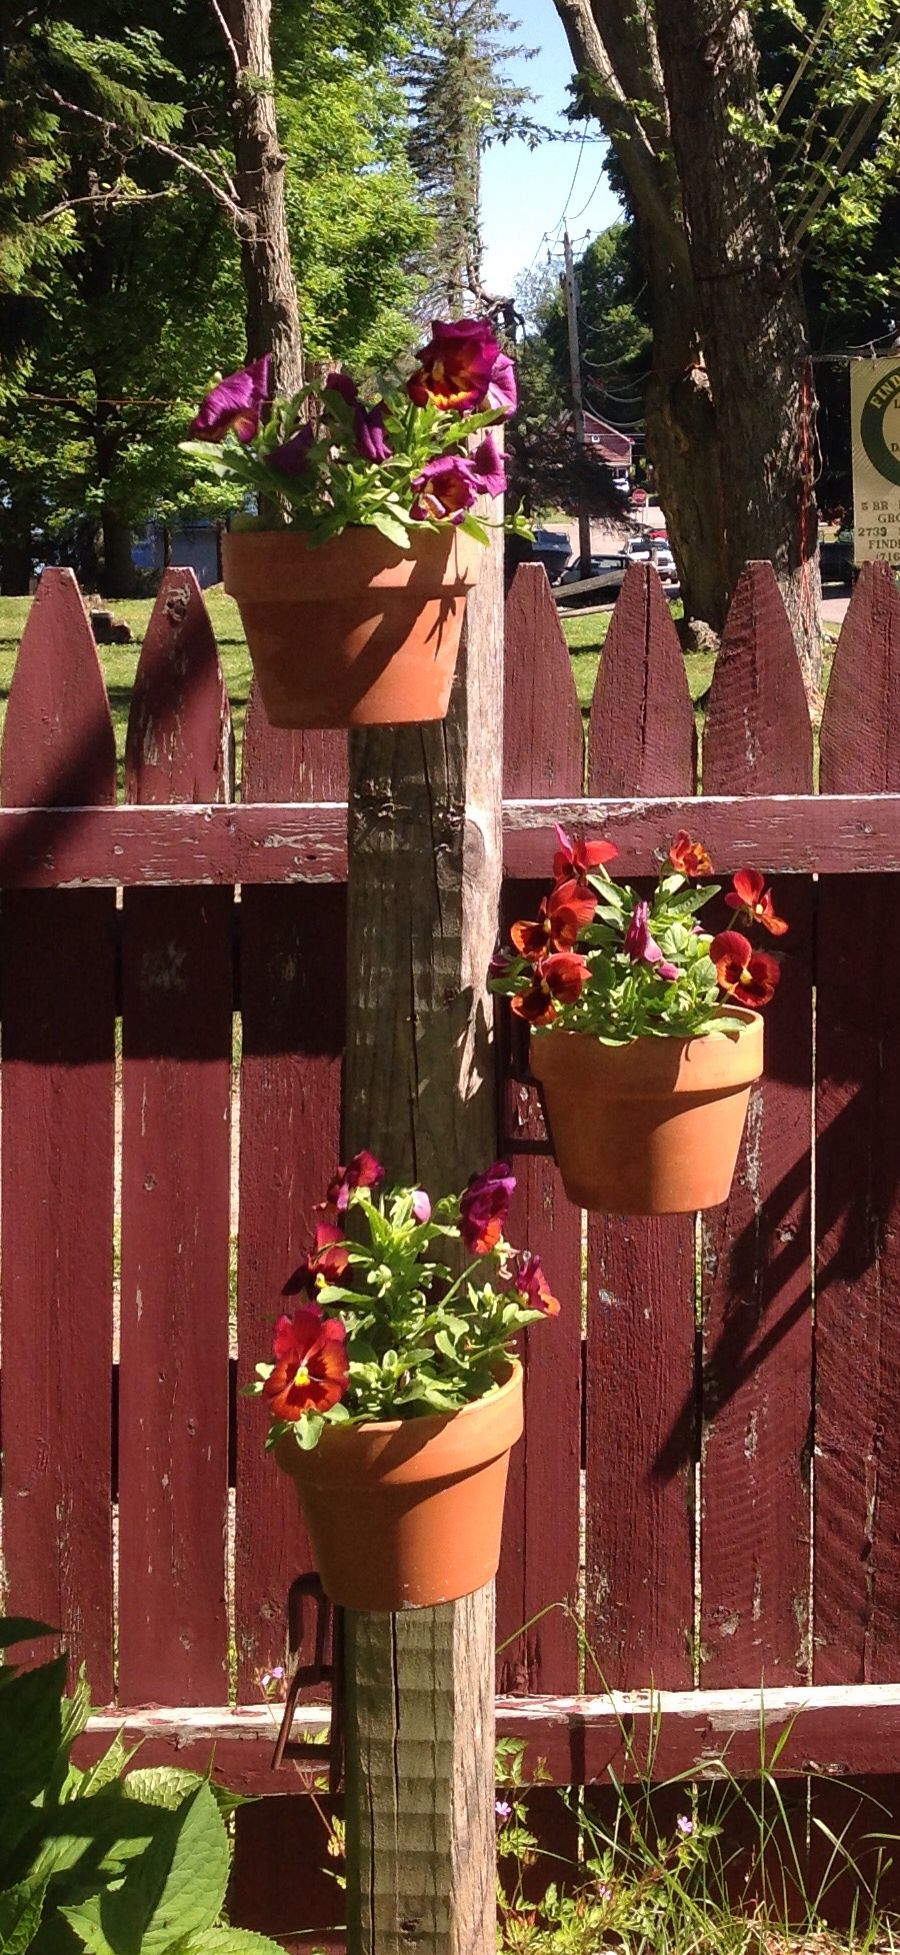 Diy A Seasonal Flower Pole Sink Fence Post Attach Hangapot Hangers In Spiral Or Tered Design Hang Clay Pots Of Pansies Strawberries The